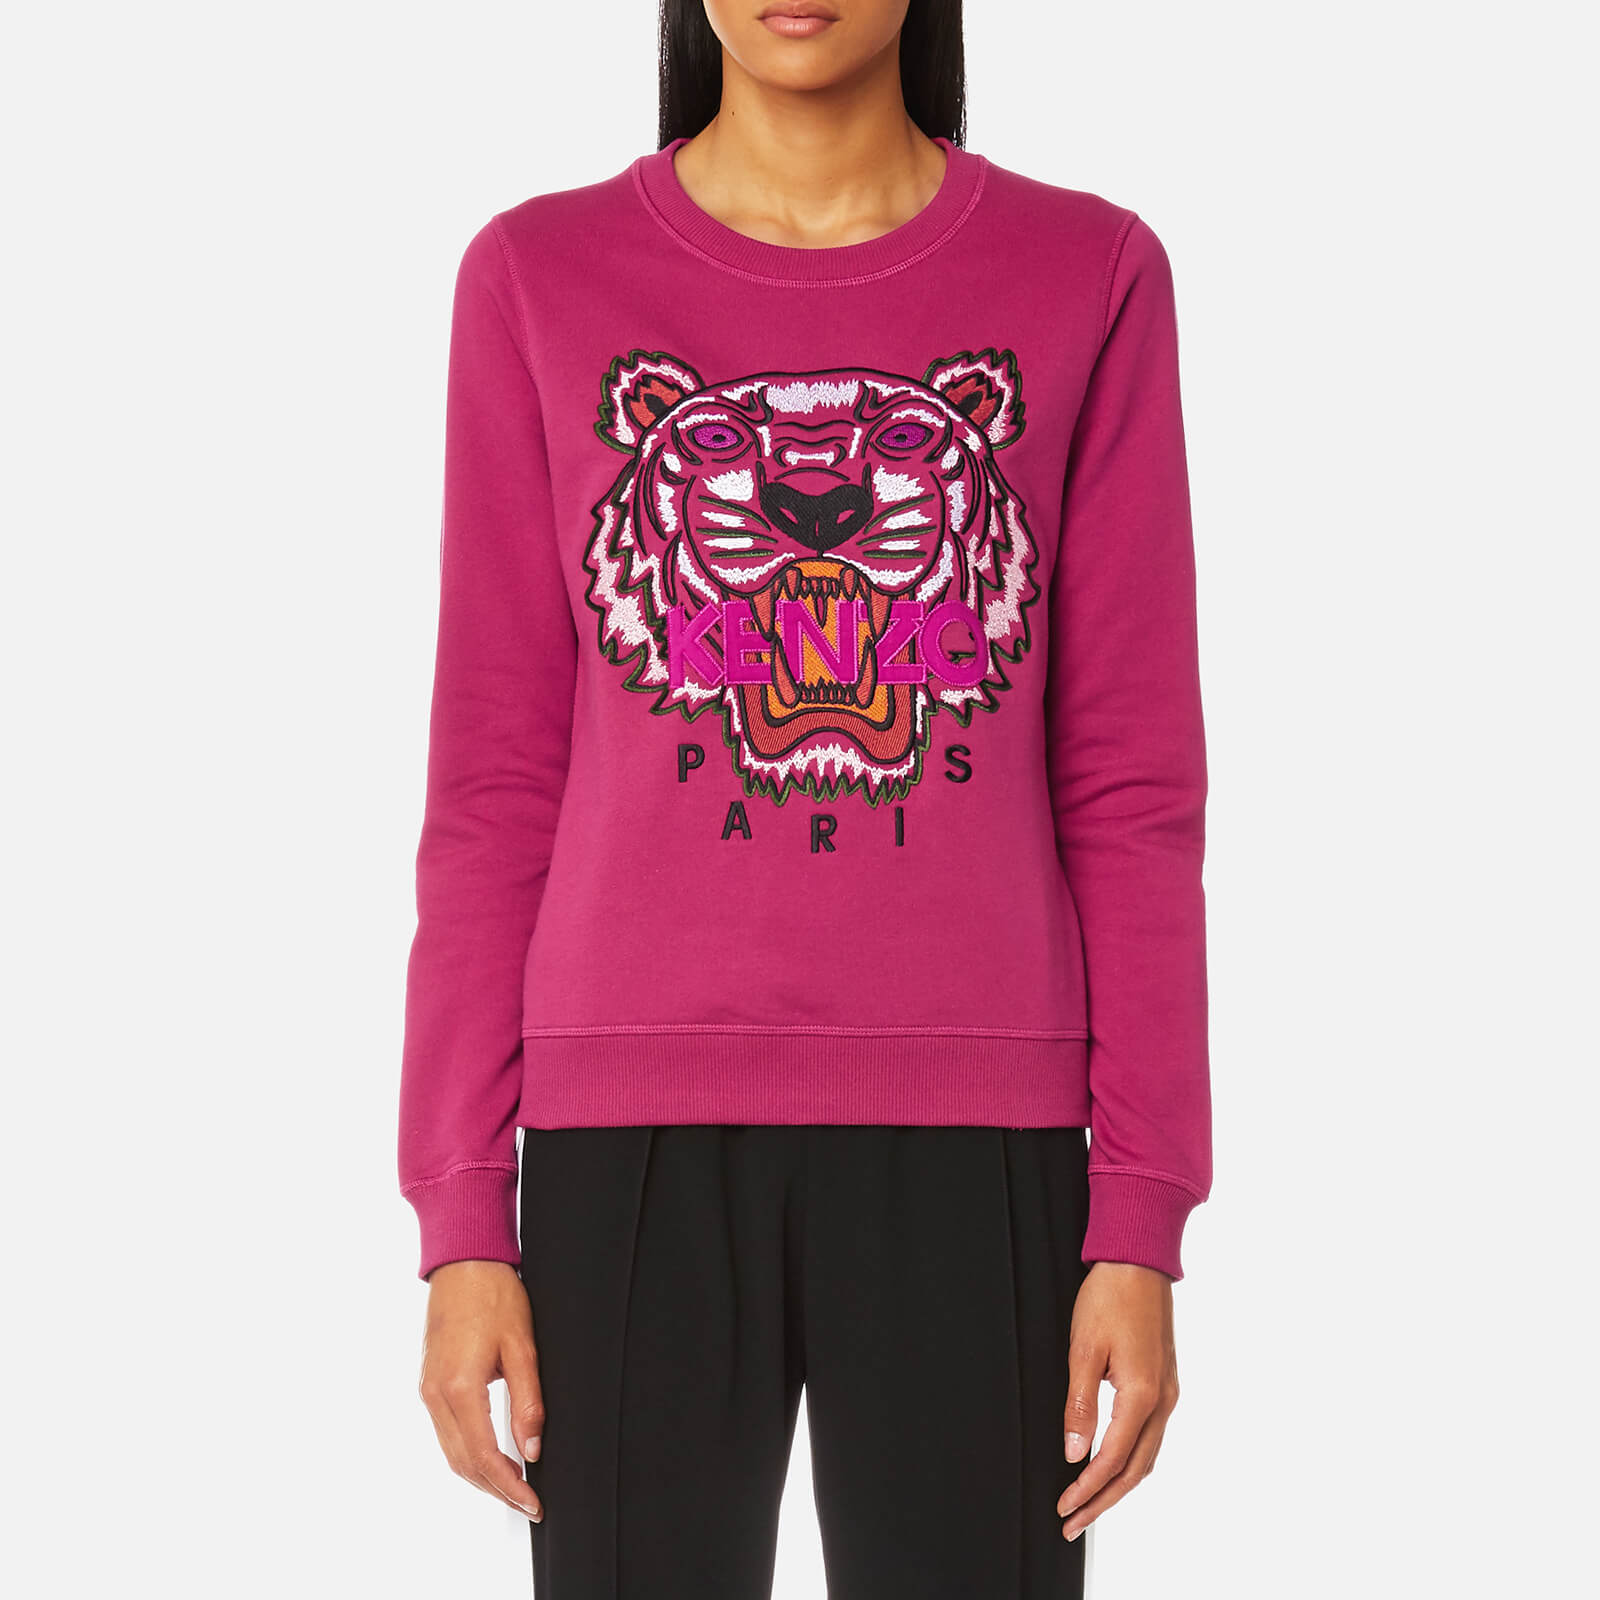 a7aa8d182 KENZO Women's Classic Tiger Sweatshirt - Deep Fuchsia - Free UK Delivery  over £50